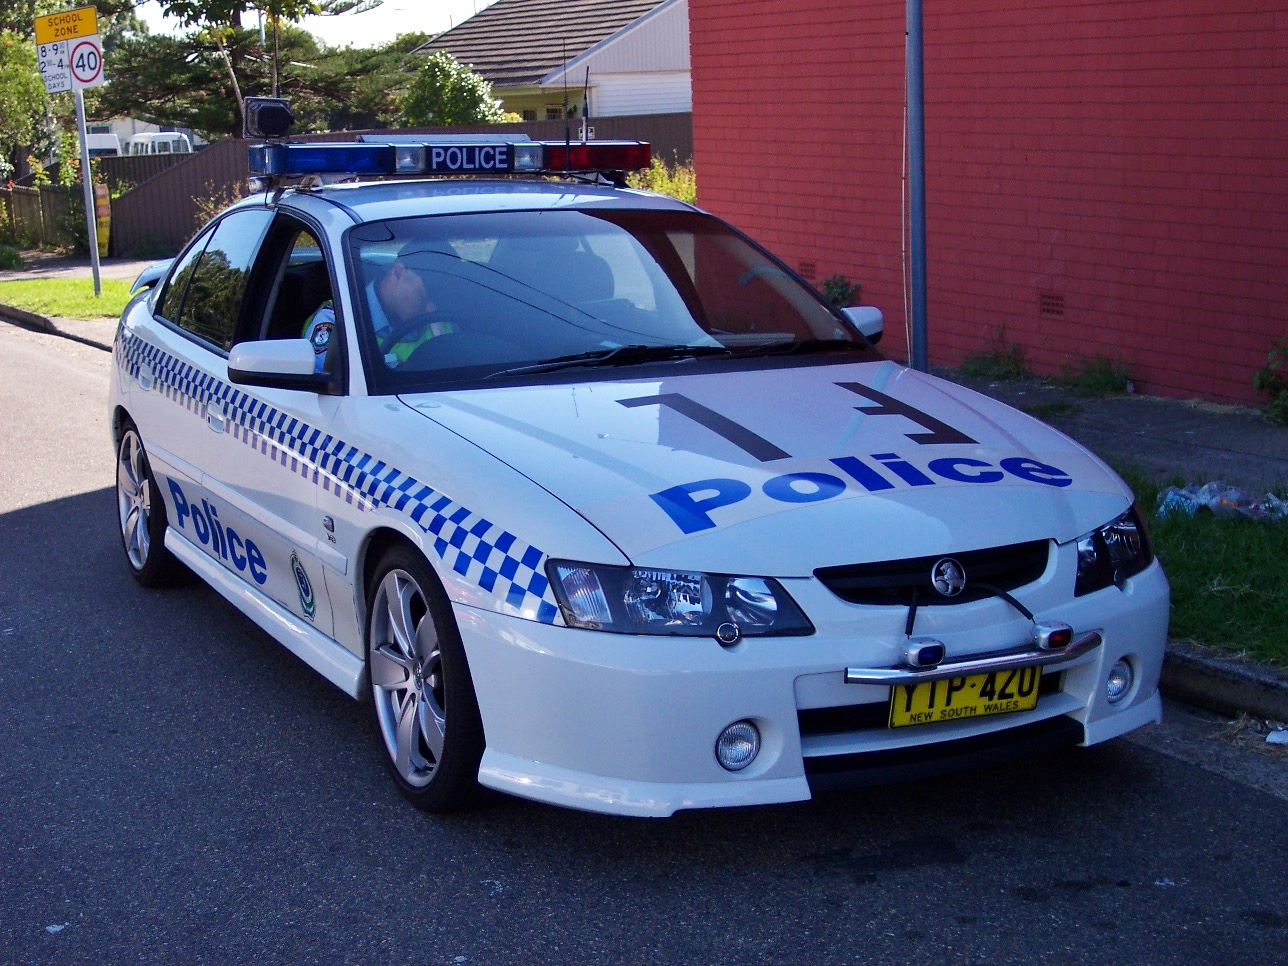 File2003 holden vy commodore ss nsw police 5497884055g file2003 holden vy commodore ss nsw police 5497884055g vanachro Images